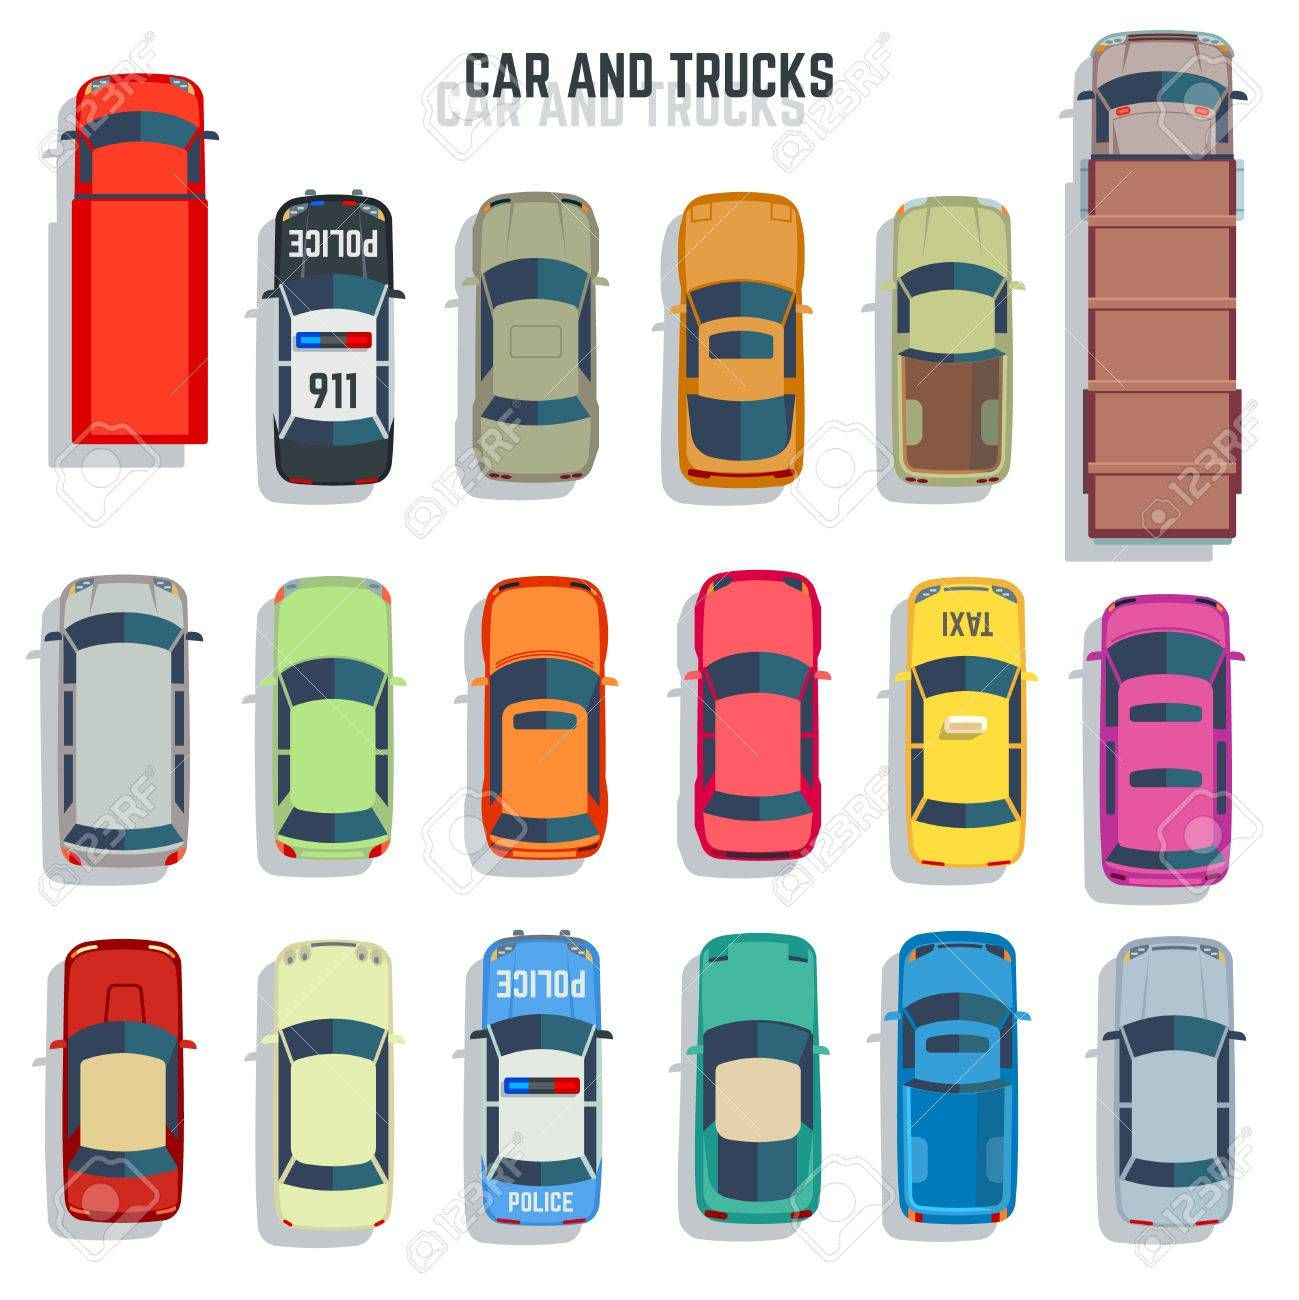 Cars and trucks top view flat vector icons. Set of car and